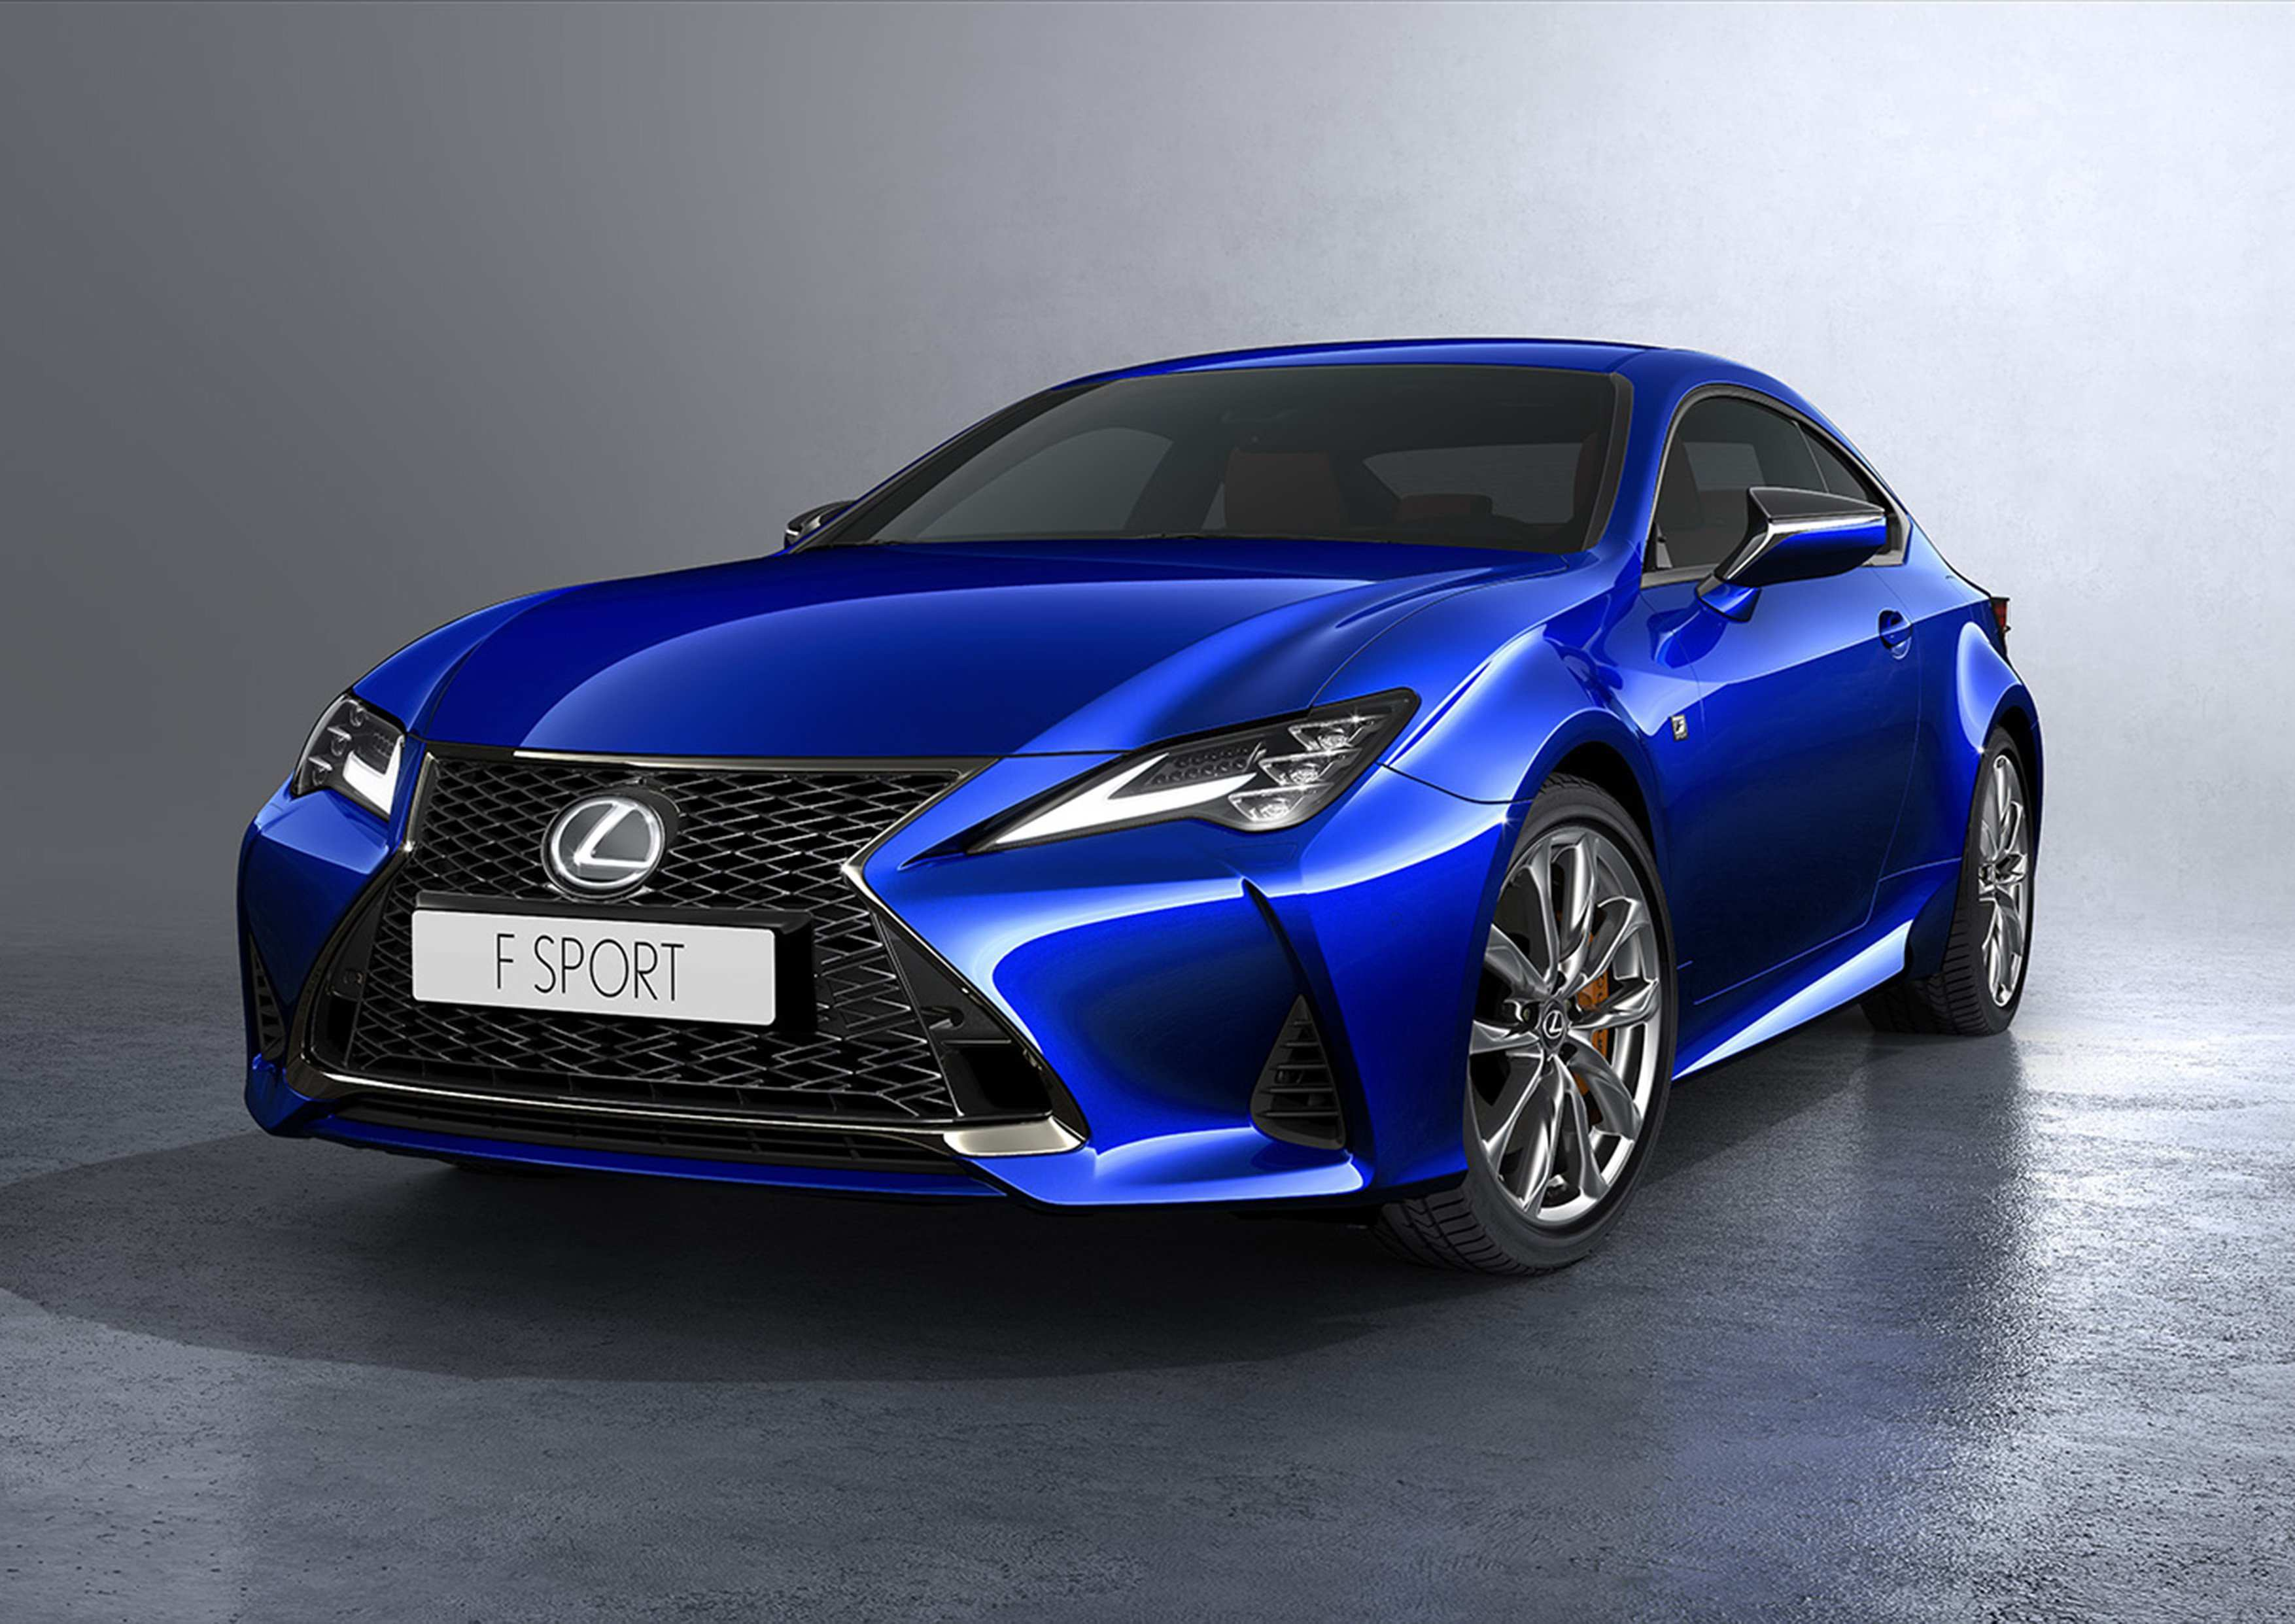 35 New When Does Lexus 2020 Come Out Performance for When Does Lexus 2020 Come Out